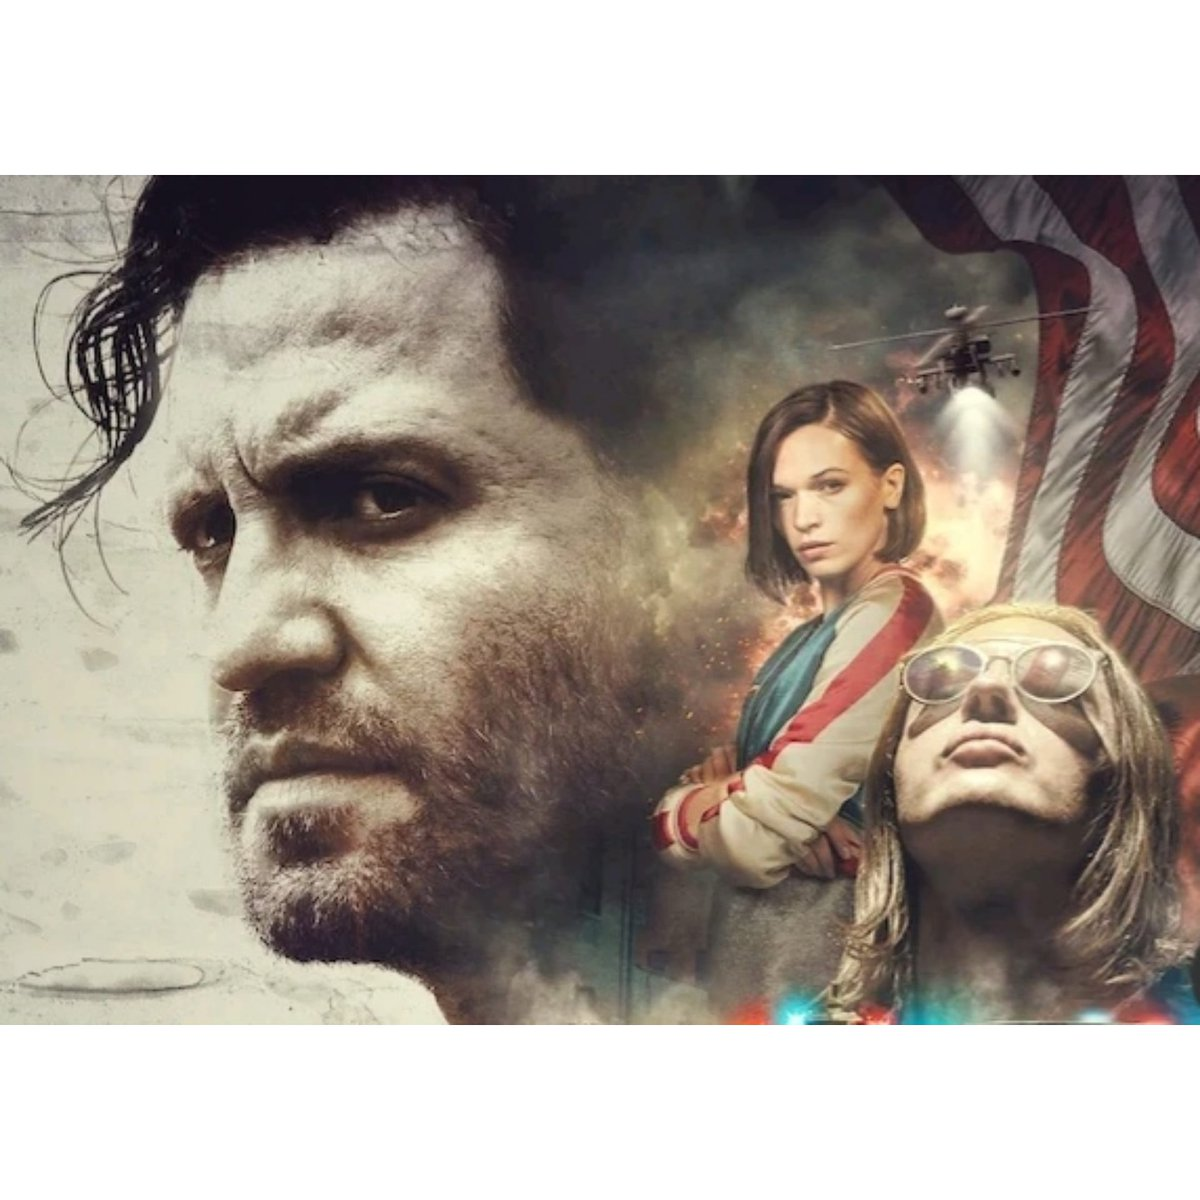 Website Wer On Twitter Fyi Check New Promotional Poster Of Edgarramirez25 On Netflix The Last Days Of American Crime Based On The Graphic Novel Michaelpitt Messbrewster Sharlto Directing By Olivier Megaton Lastdaysofamericancrime Movie